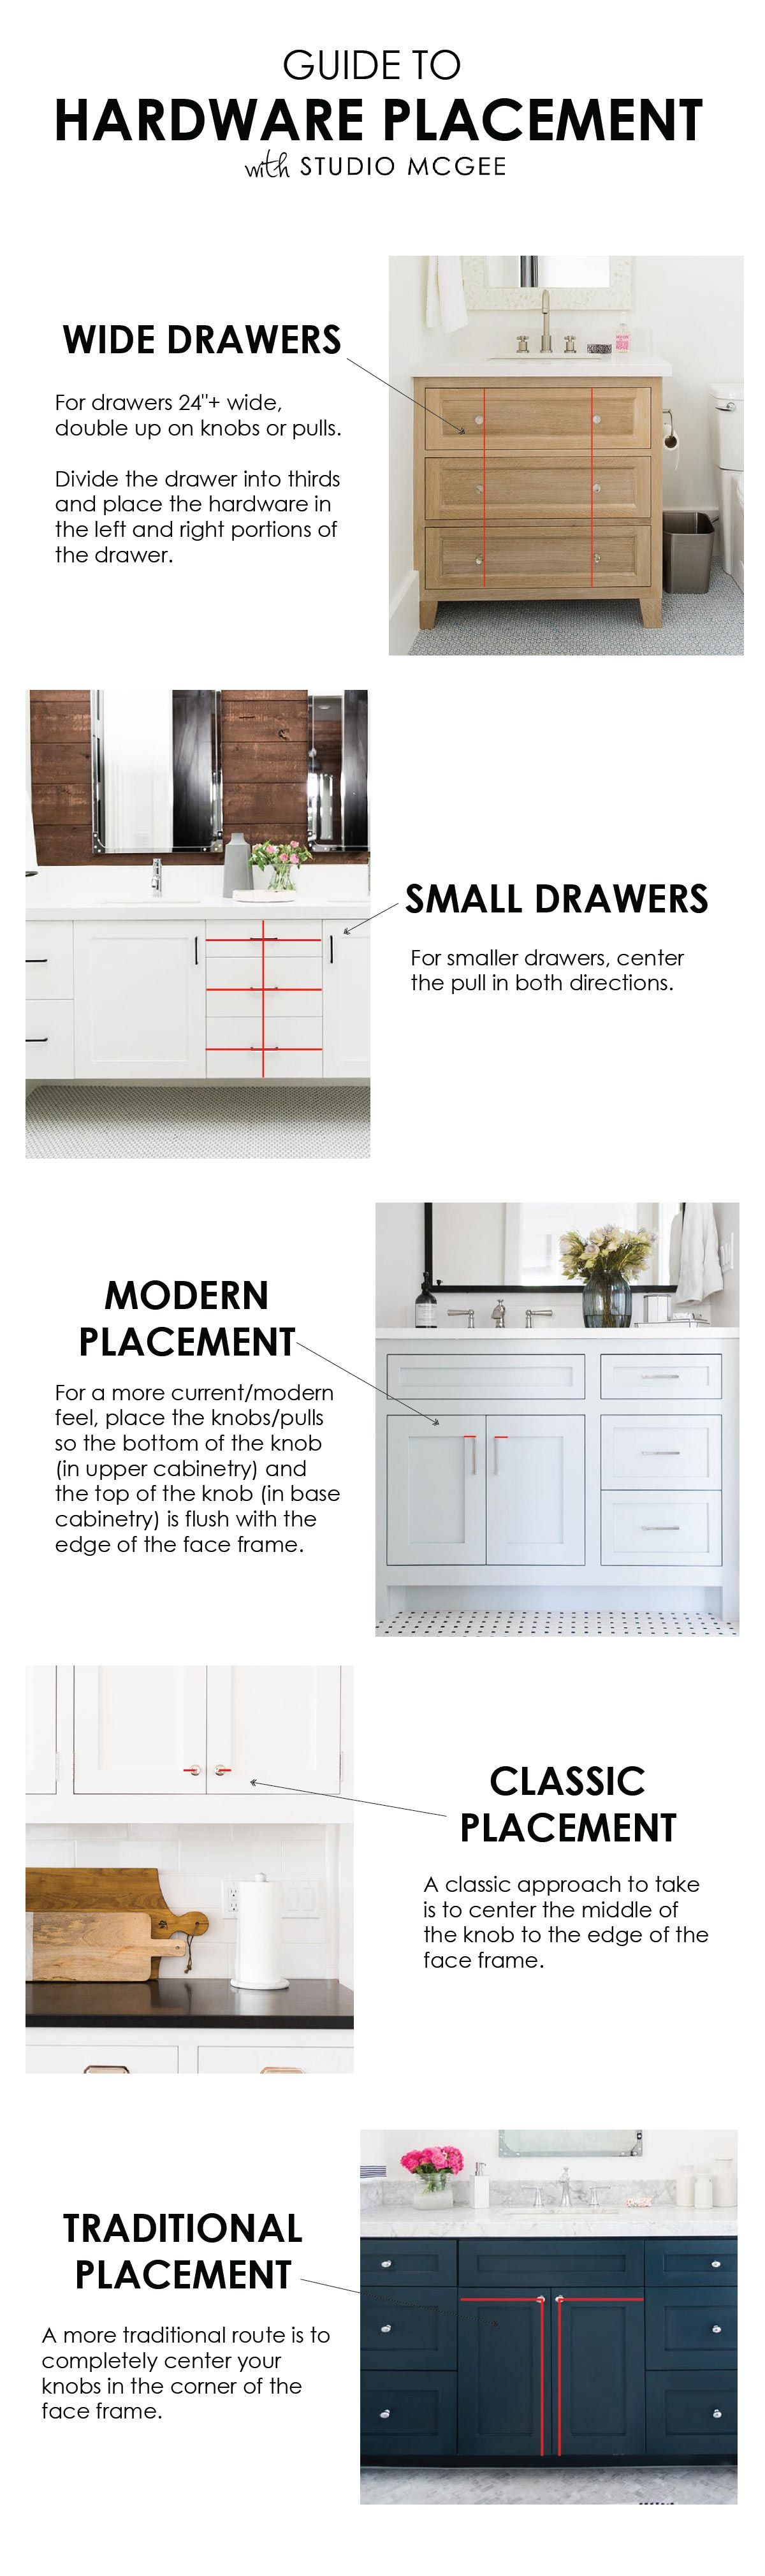 Guide To Hardware Placement   Studio McGee Blog.   [ ] | Dresner Design:  Kitchen Design U0026 Custom Cabinetry. #ModernKitchen #KitchenDesign  #DesignInspiration ...